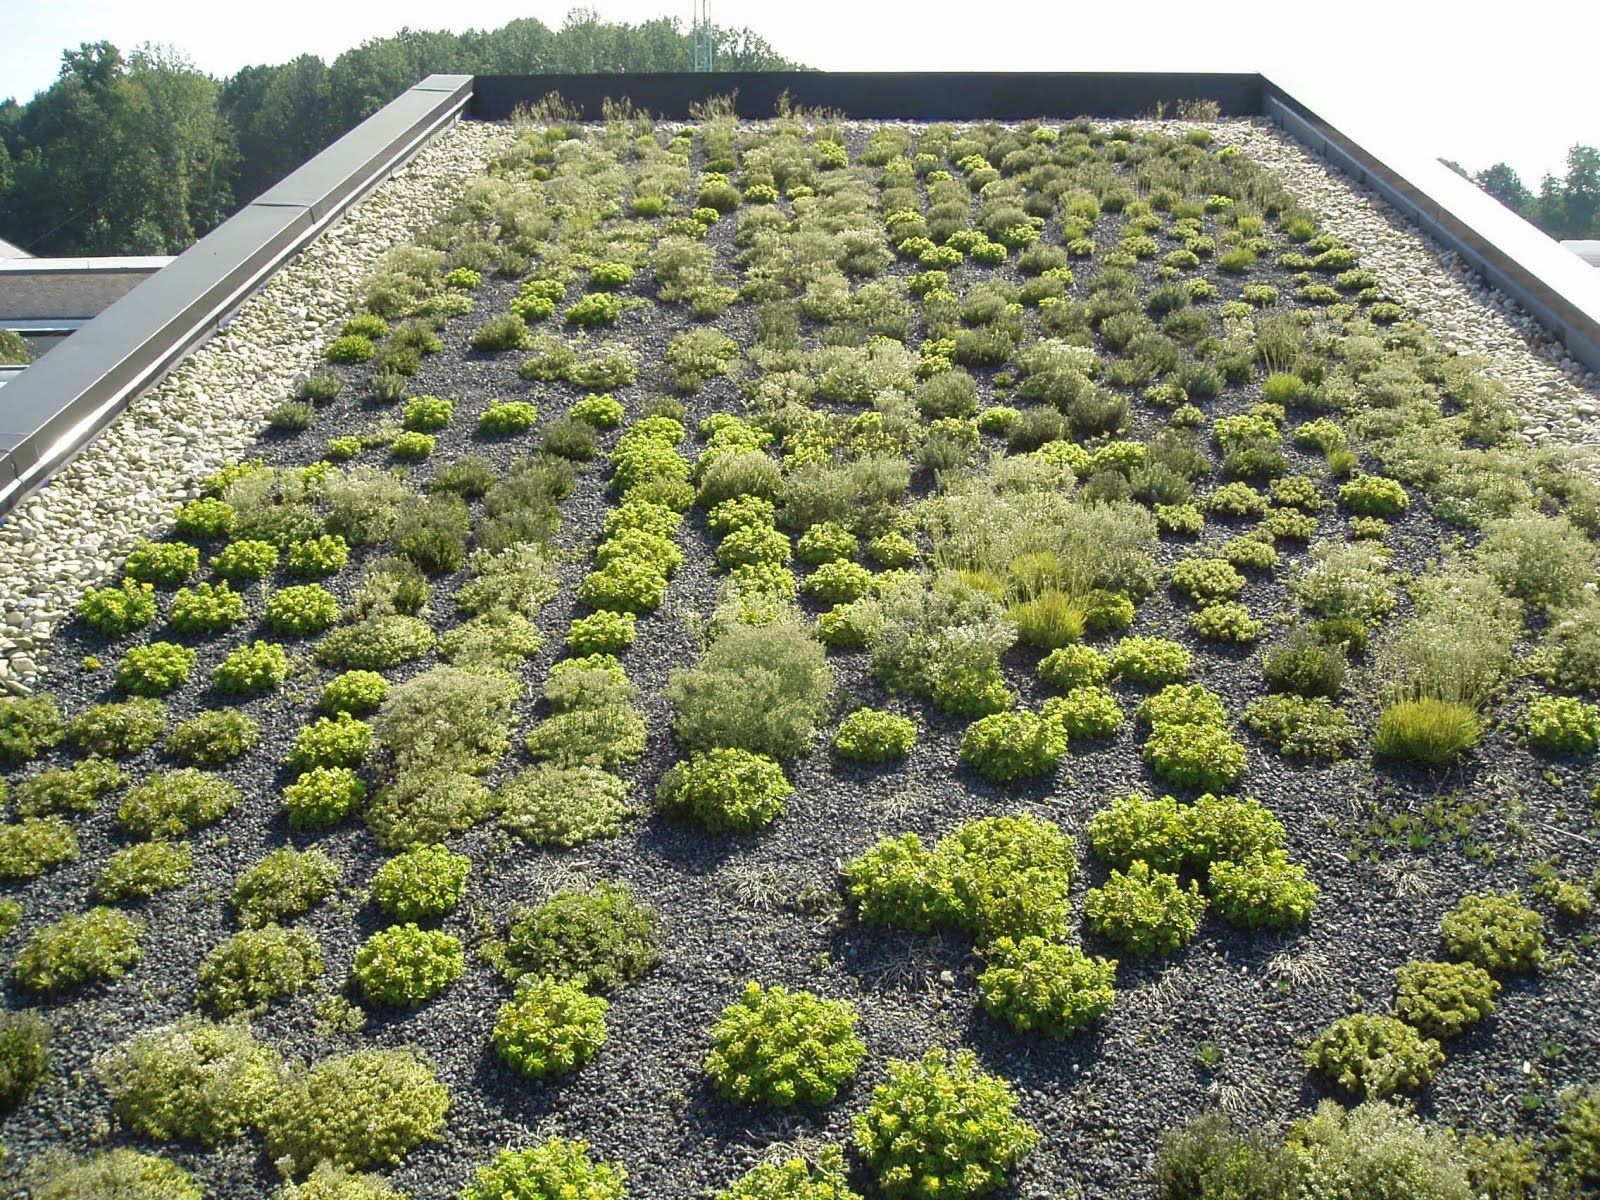 Vegetated roof at Catoctin Nature Center